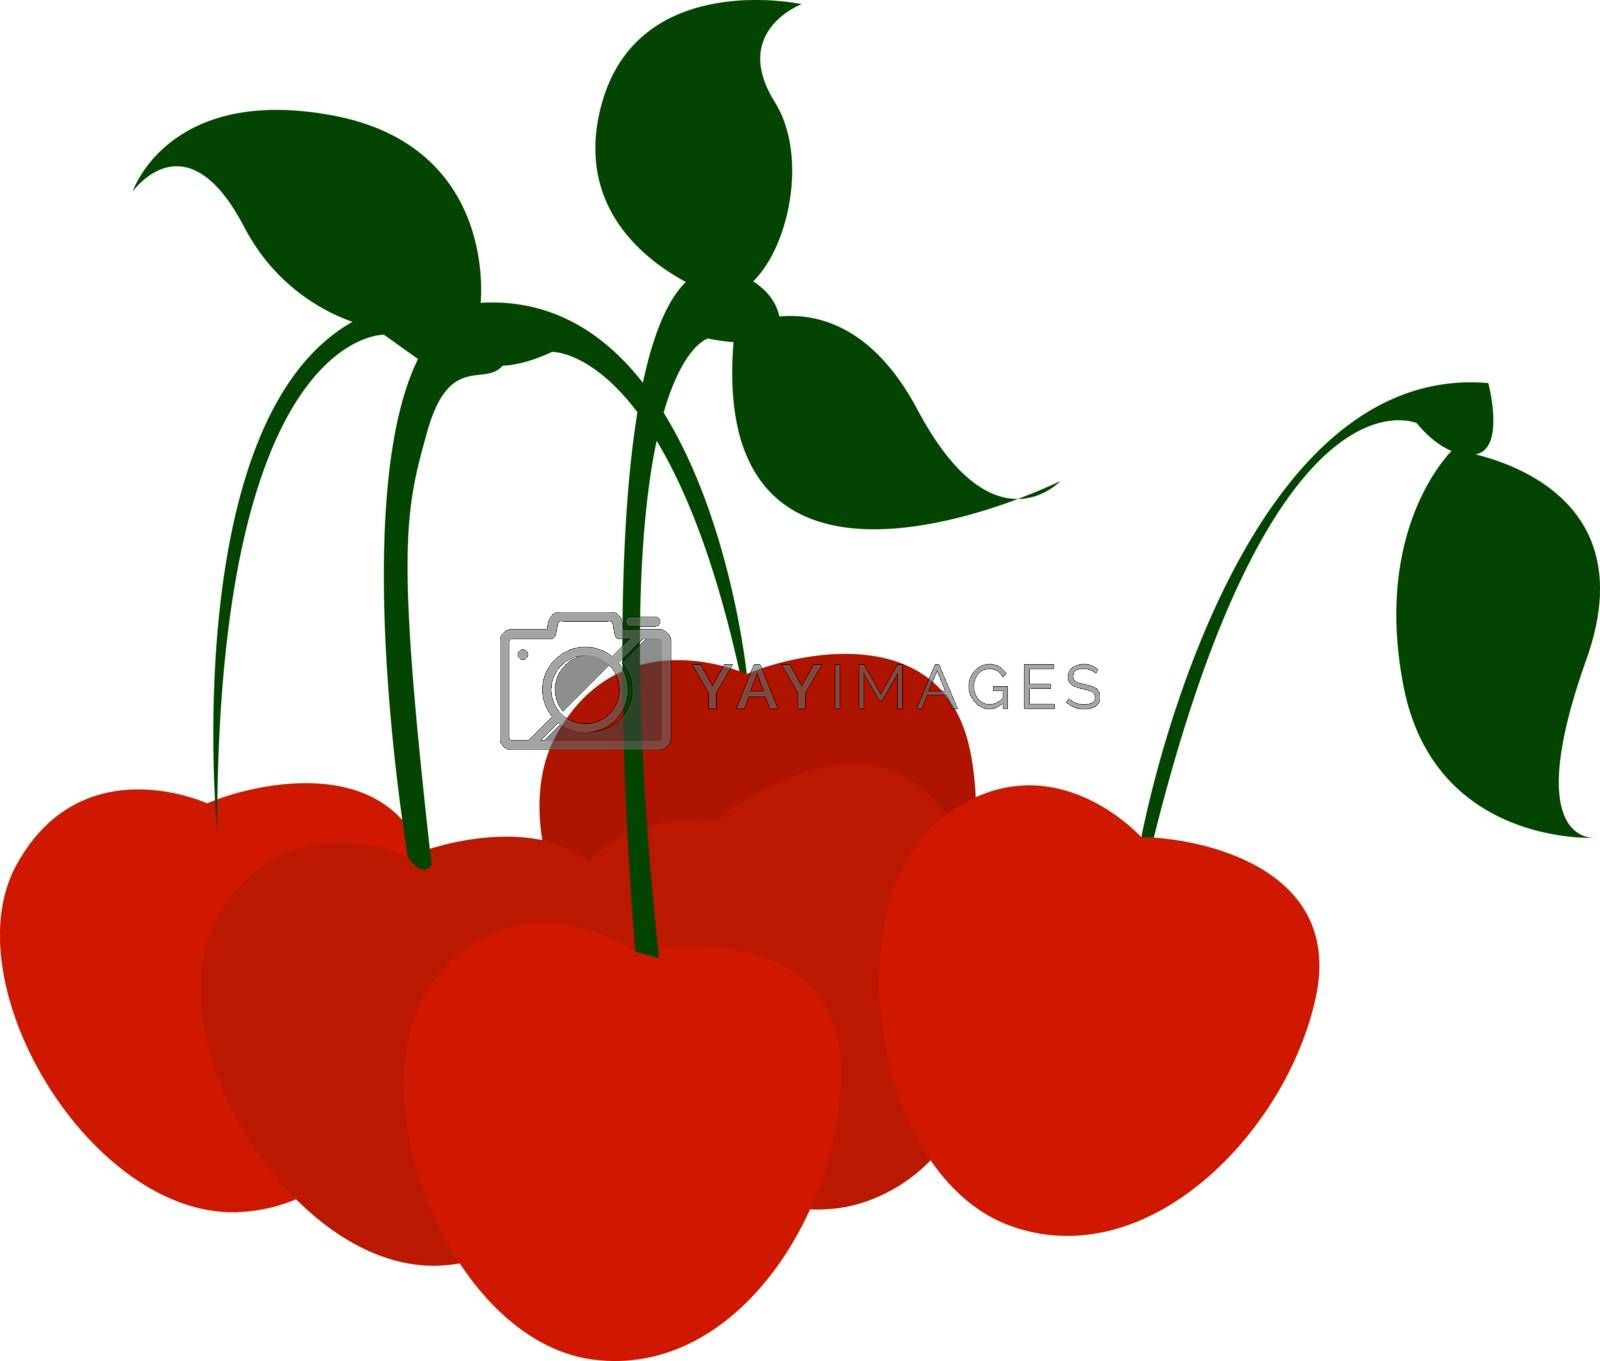 Cherries, illustration, vector on white background.